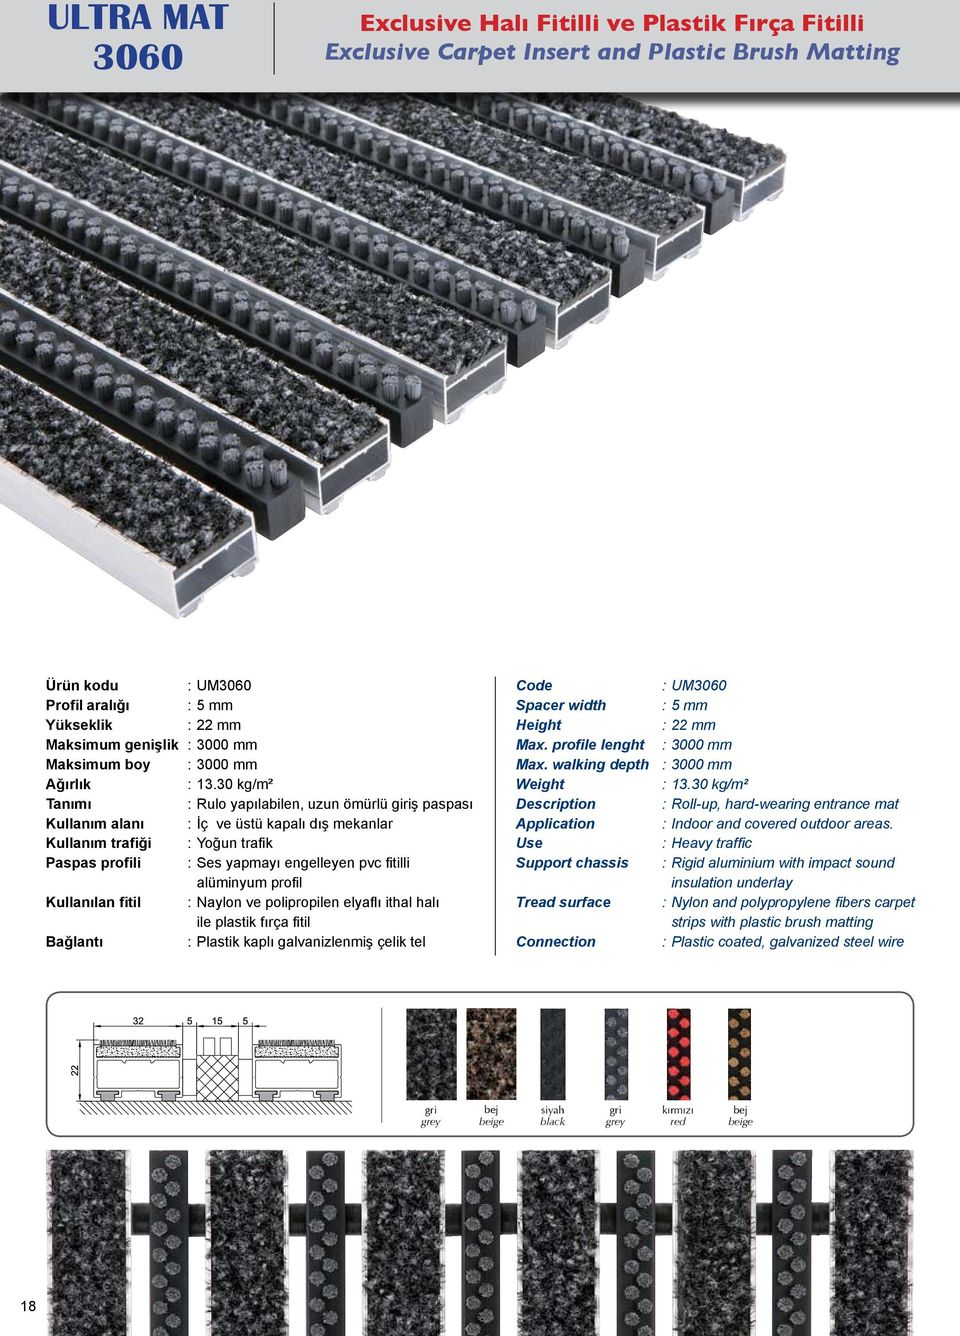 Plastik kaplı galvanizlenmiş çelik tel Spacer width Max. profile lenght Max. walking depth Description Application Support chassis Tread surface Connection : UM3060 : 5 mm : 3000 mm : 3000 mm : 13.